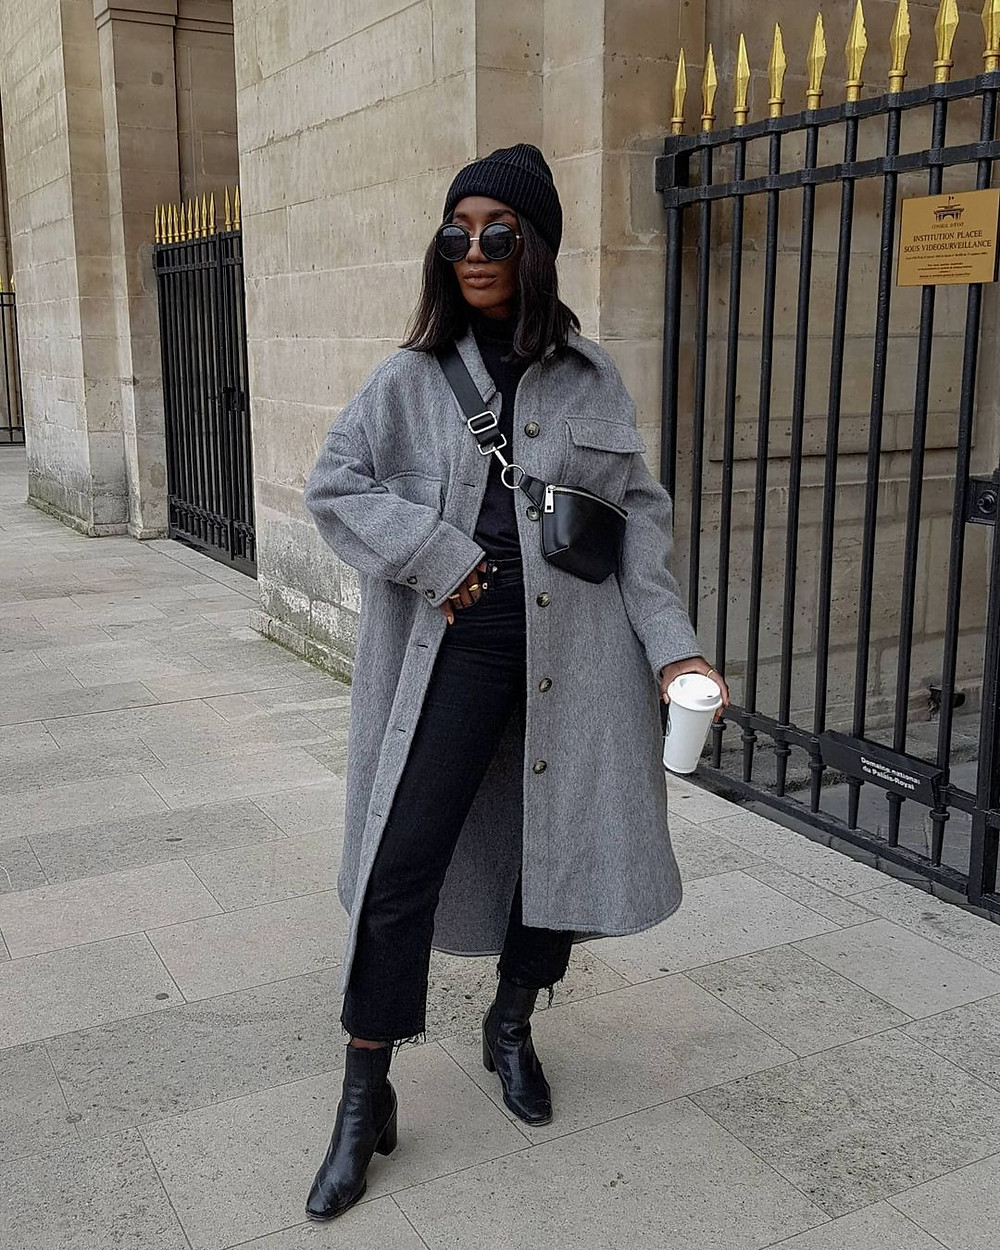 woman wears black leather crossbody bag, grey coat, circular sunglasses, black beanie hat, and black leather boots while standing on the street in front of a stone building with iron gates